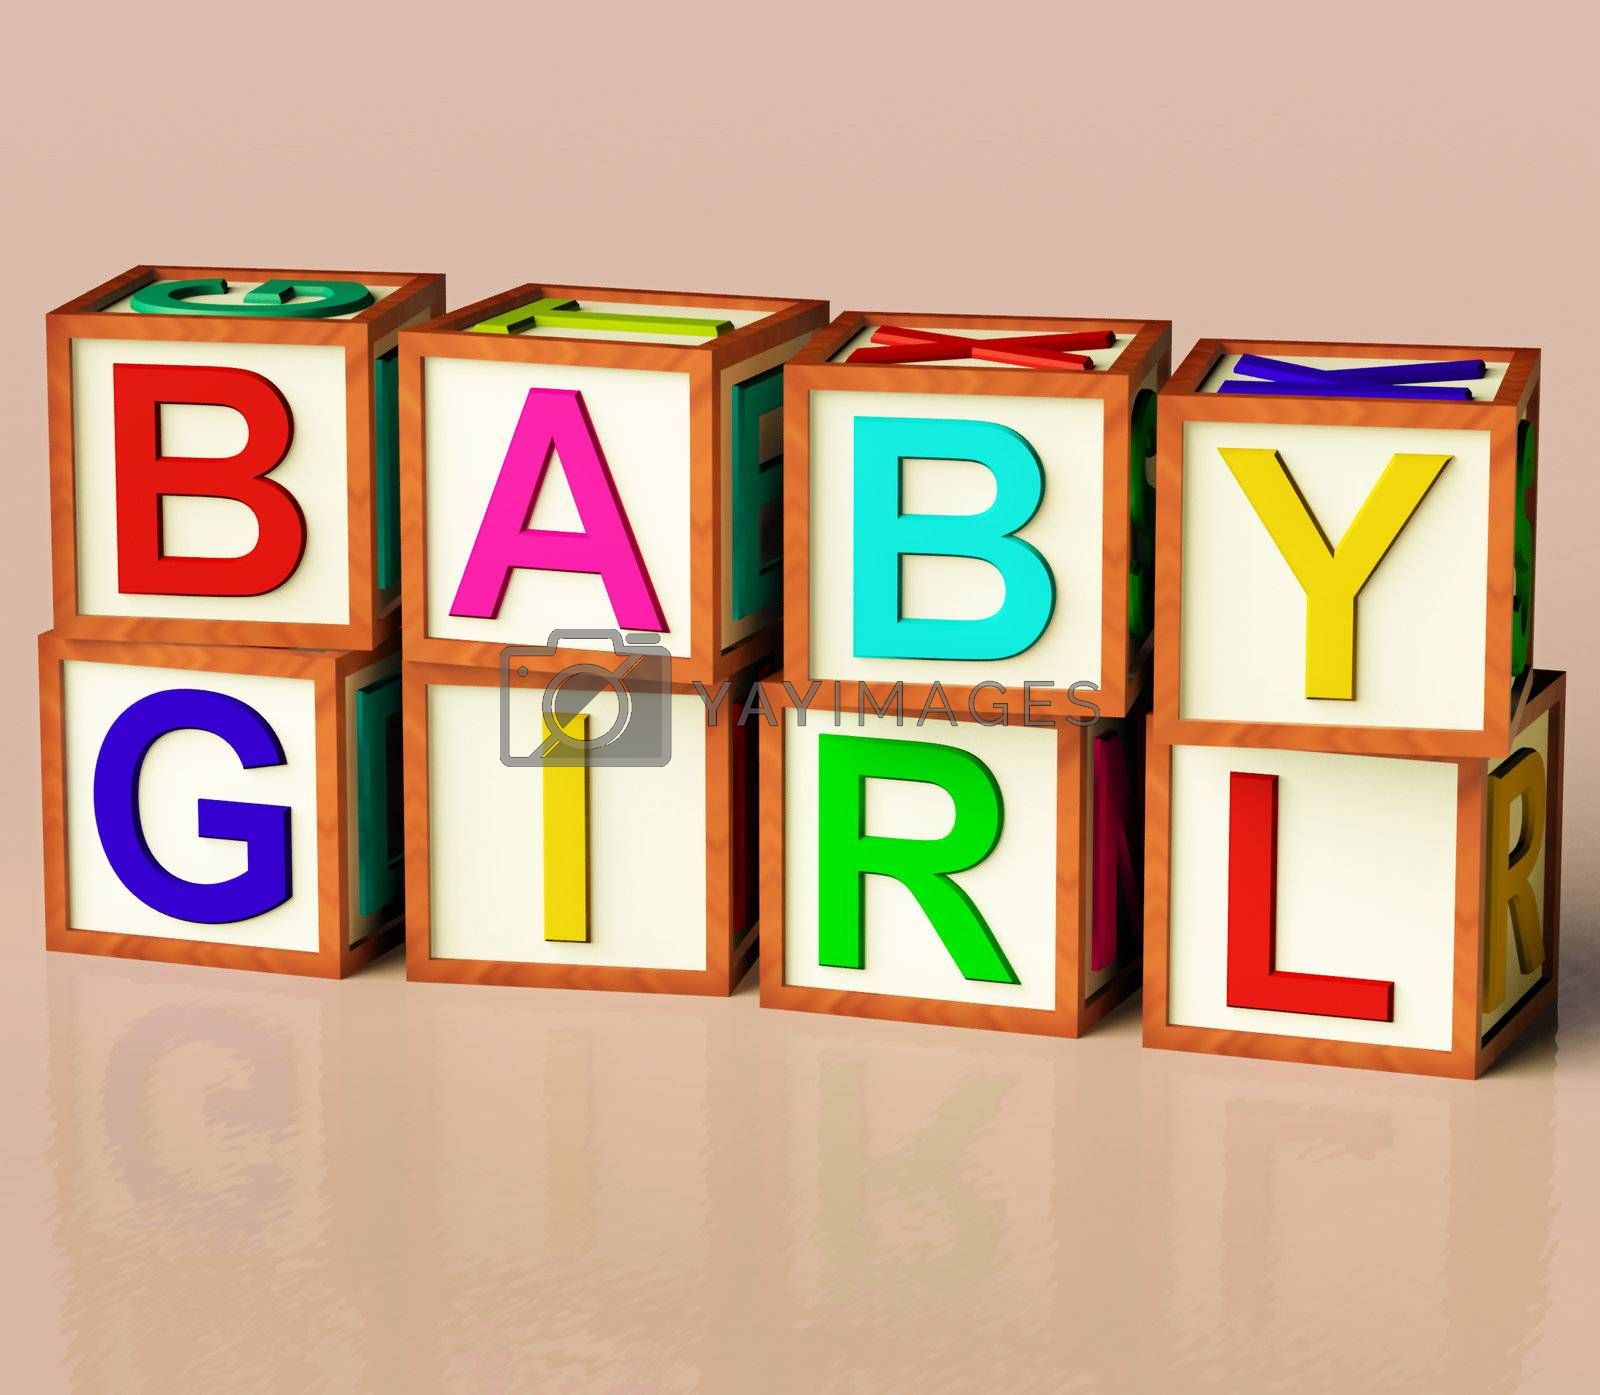 Kids Wooden Blocks Spelling Baby Girl As Symbol for Babies And Childhood